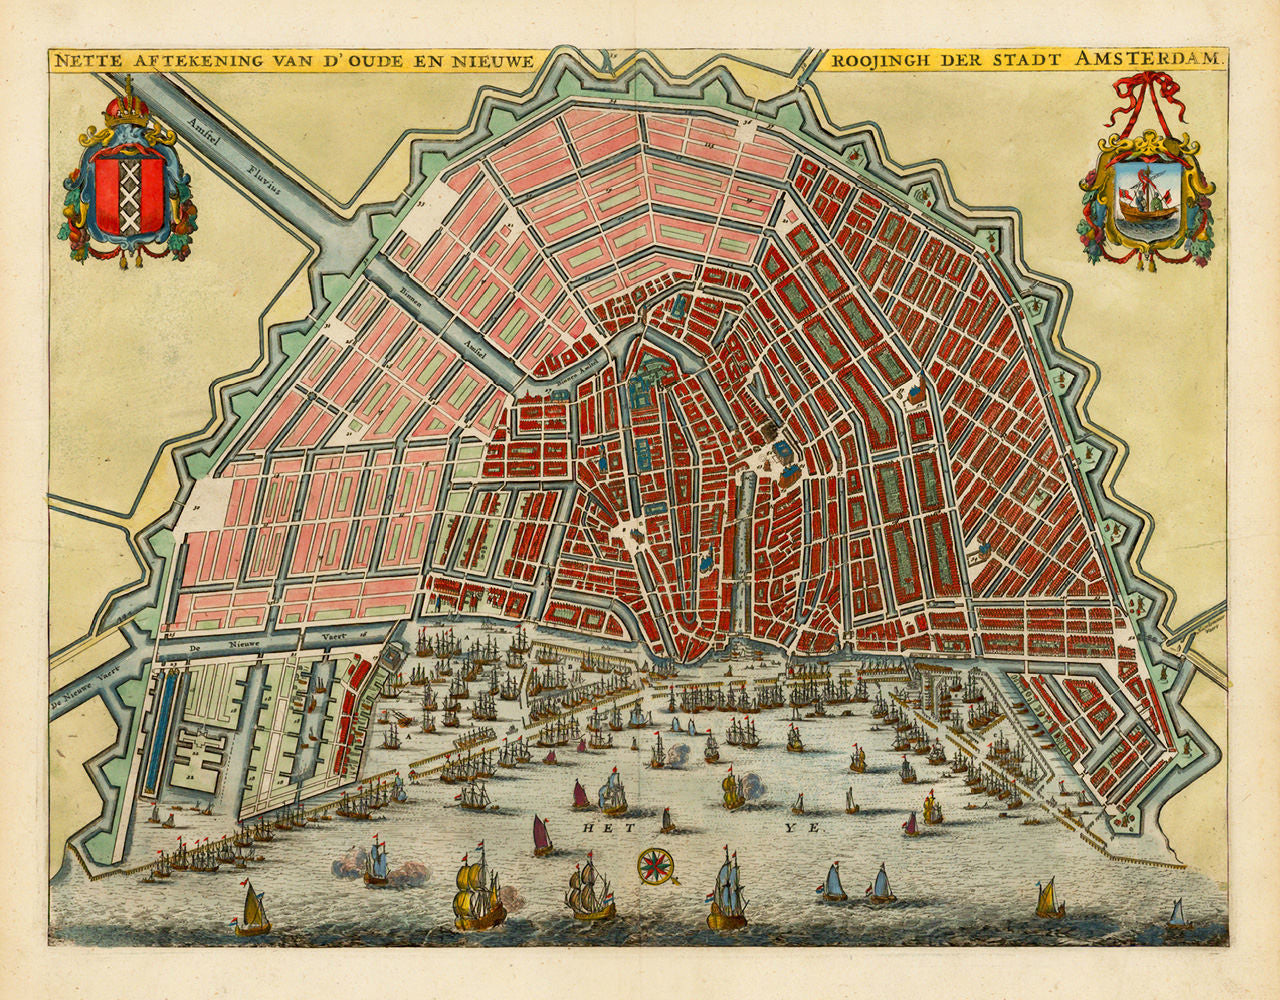 Amsterdam, 1663, Olfert Dapper, City Plan